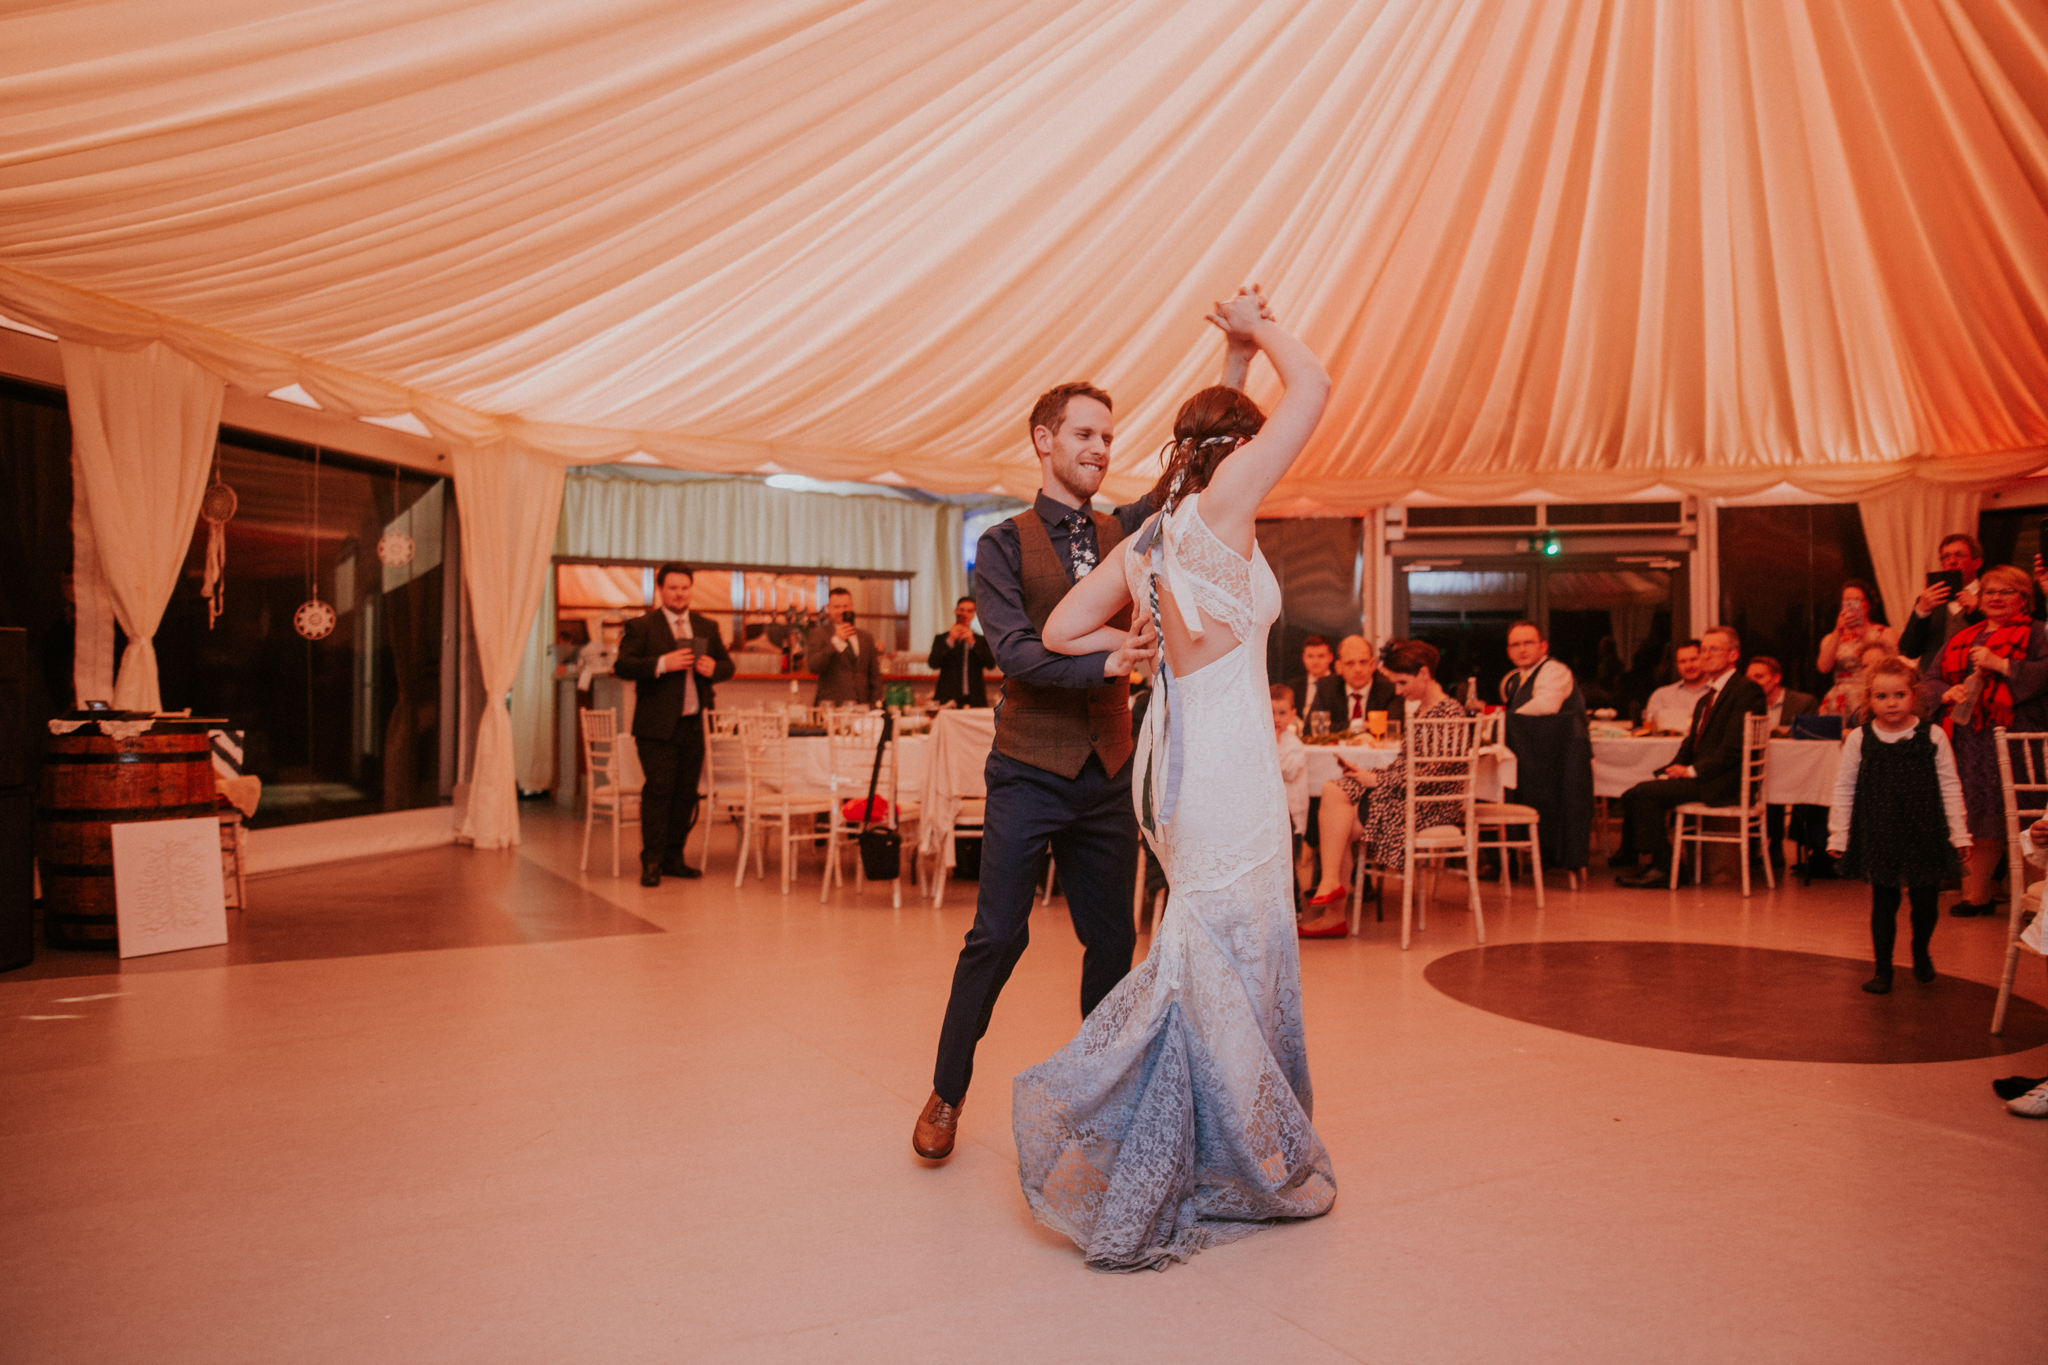 First dance as a husband and wife